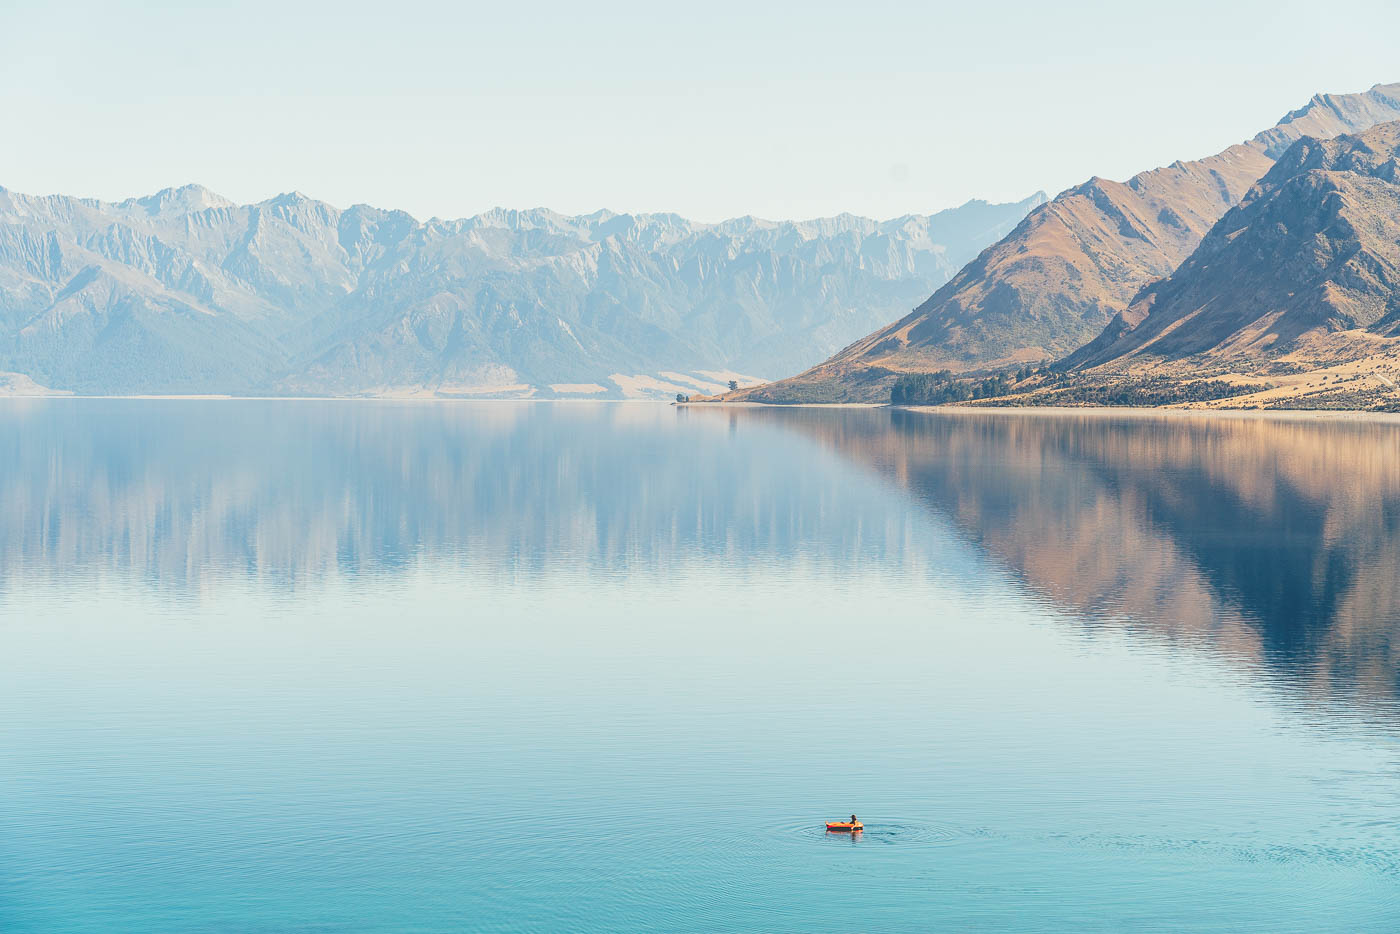 Floating across Lake Hawea in New Zealand on the Will and Bear Road trip